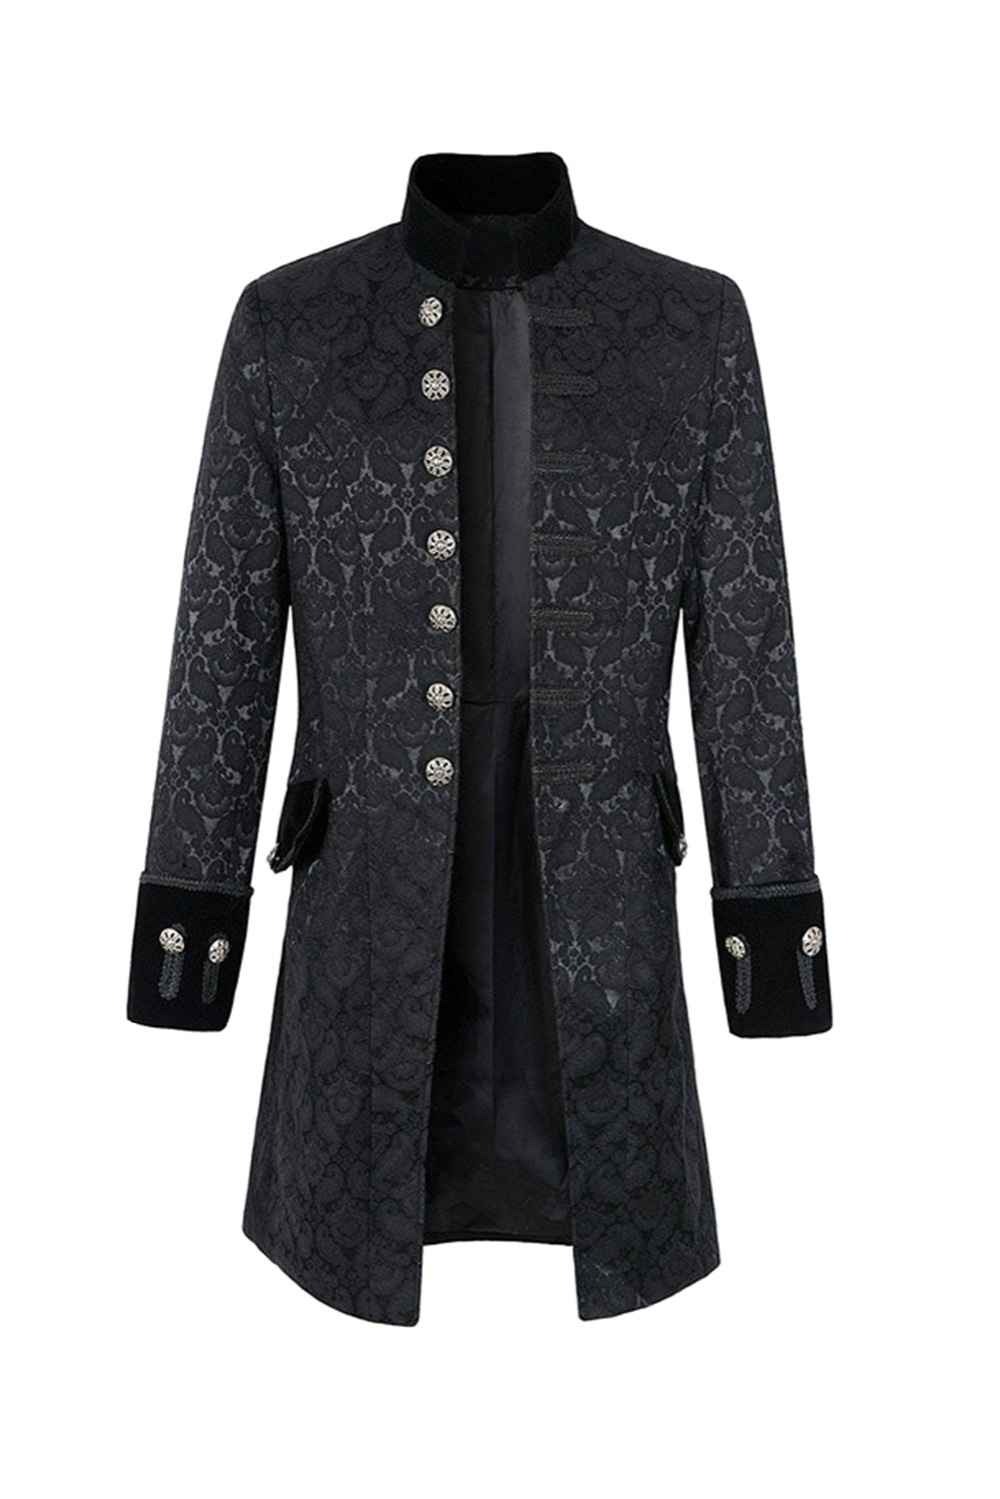 Velvet Goth Steampunk Costume Mens Court Dress Retro Victorian Frock Coat